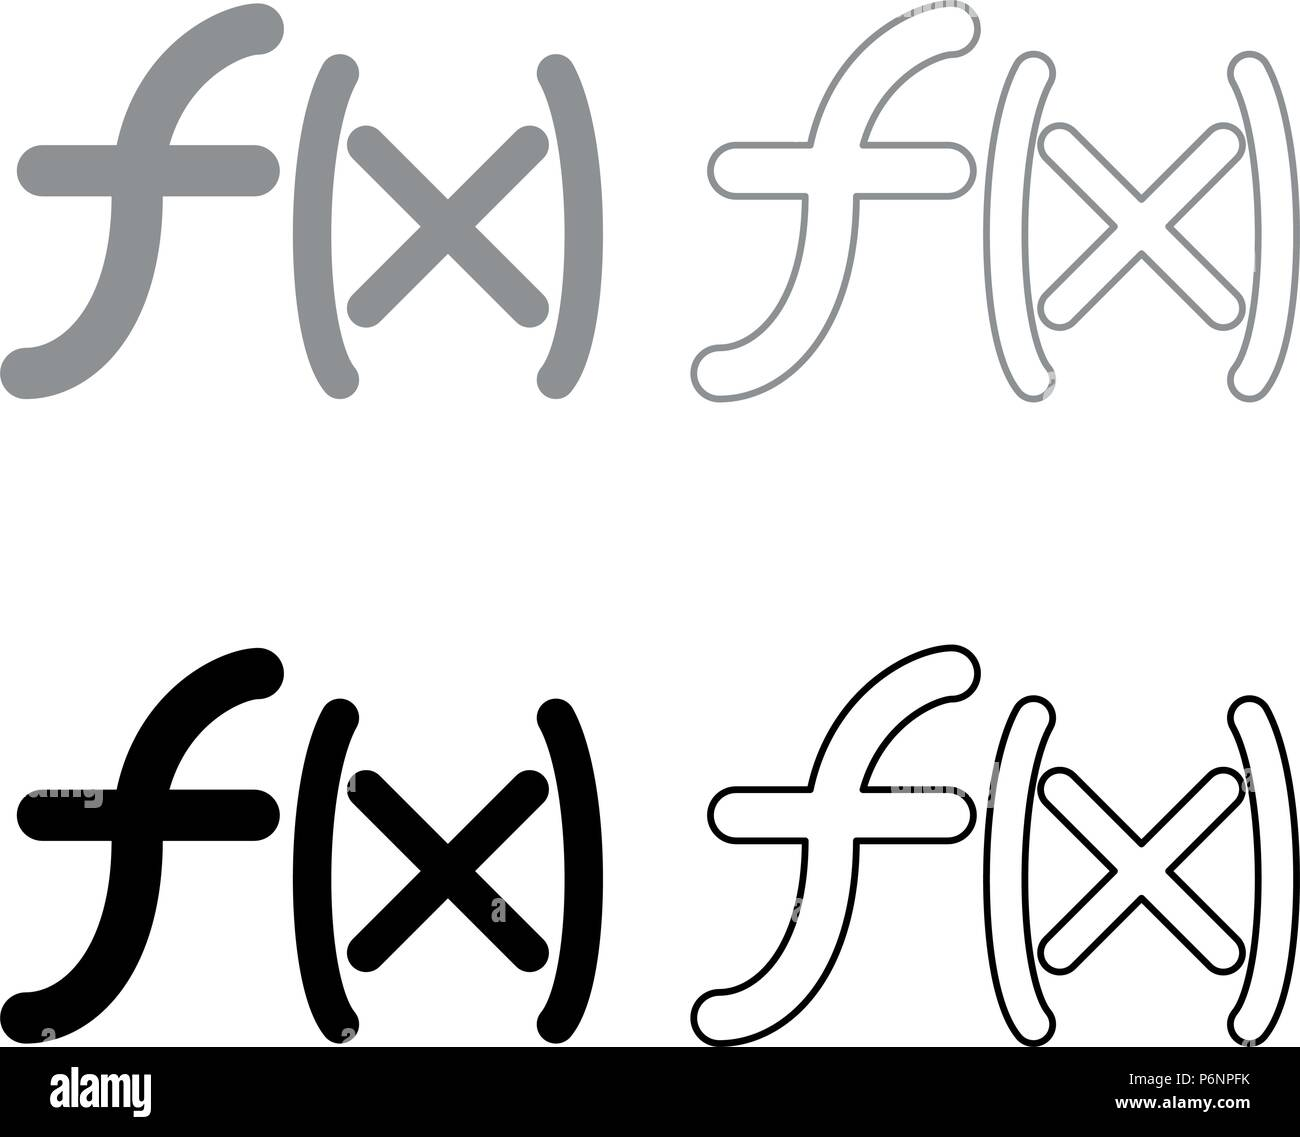 Symbol function icon set grey black color I flat style simple image - Stock Vector